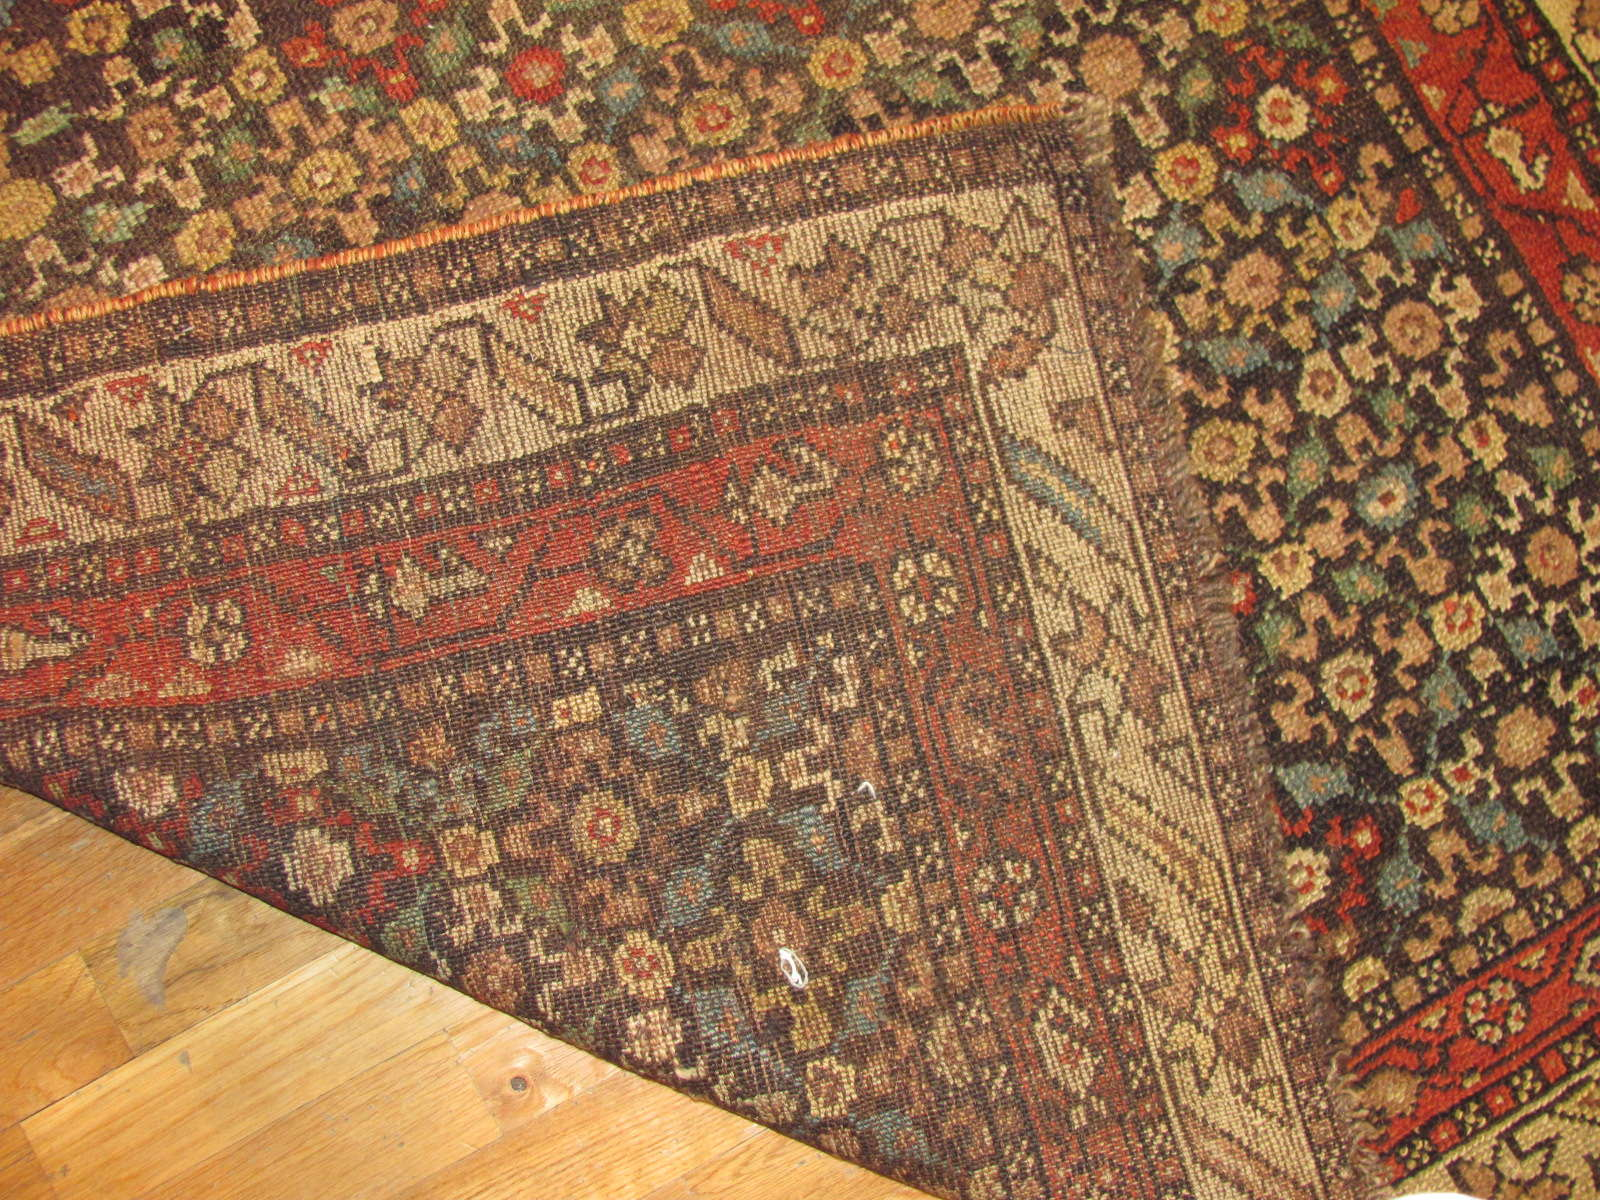 24499 antique persian kurdish rug 4,2 x 8,8 -32